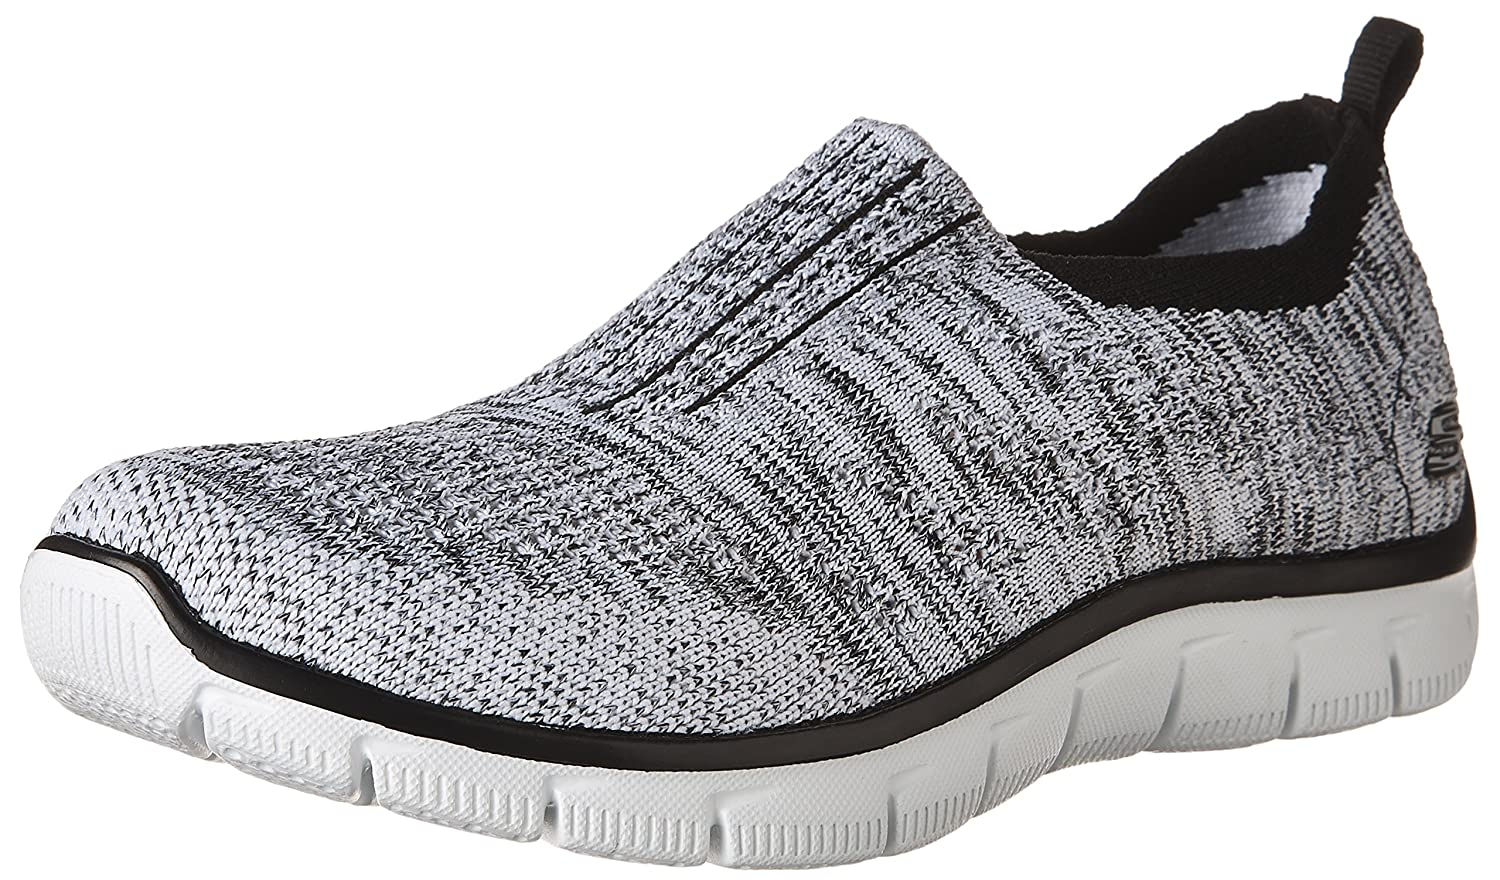 Skechers Sport Women's 8.5 Empire Inside Look Fashion Sneaker B01LX3ZEJA 8.5 Women's B(M) US|White/Black 226618